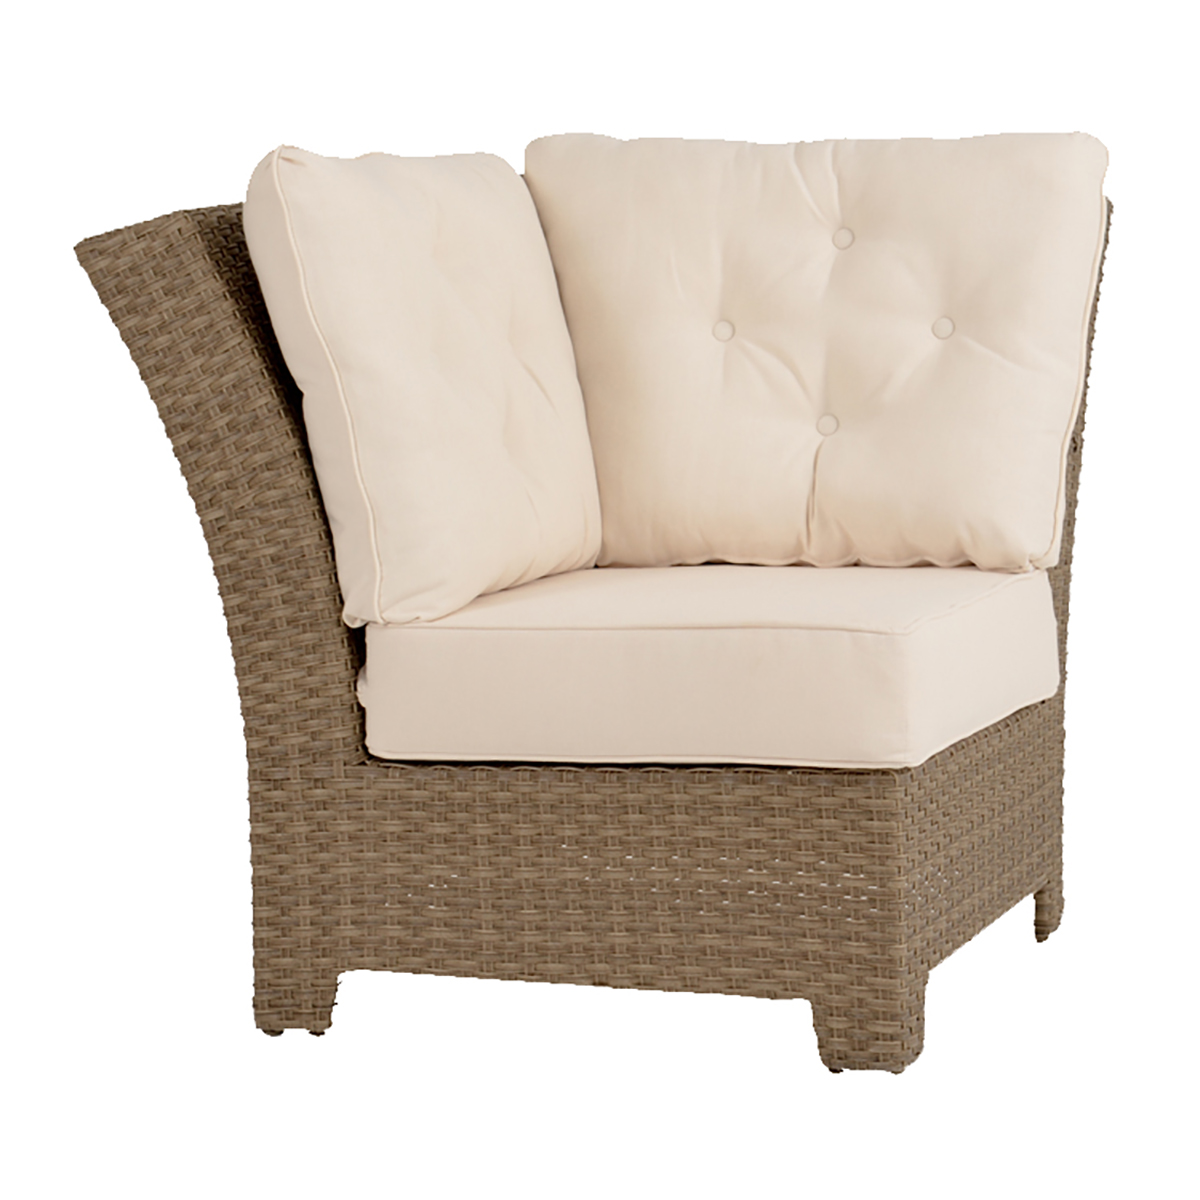 Laguna 90 Degree Wedge Sectional Chair Oyster Gray Weave